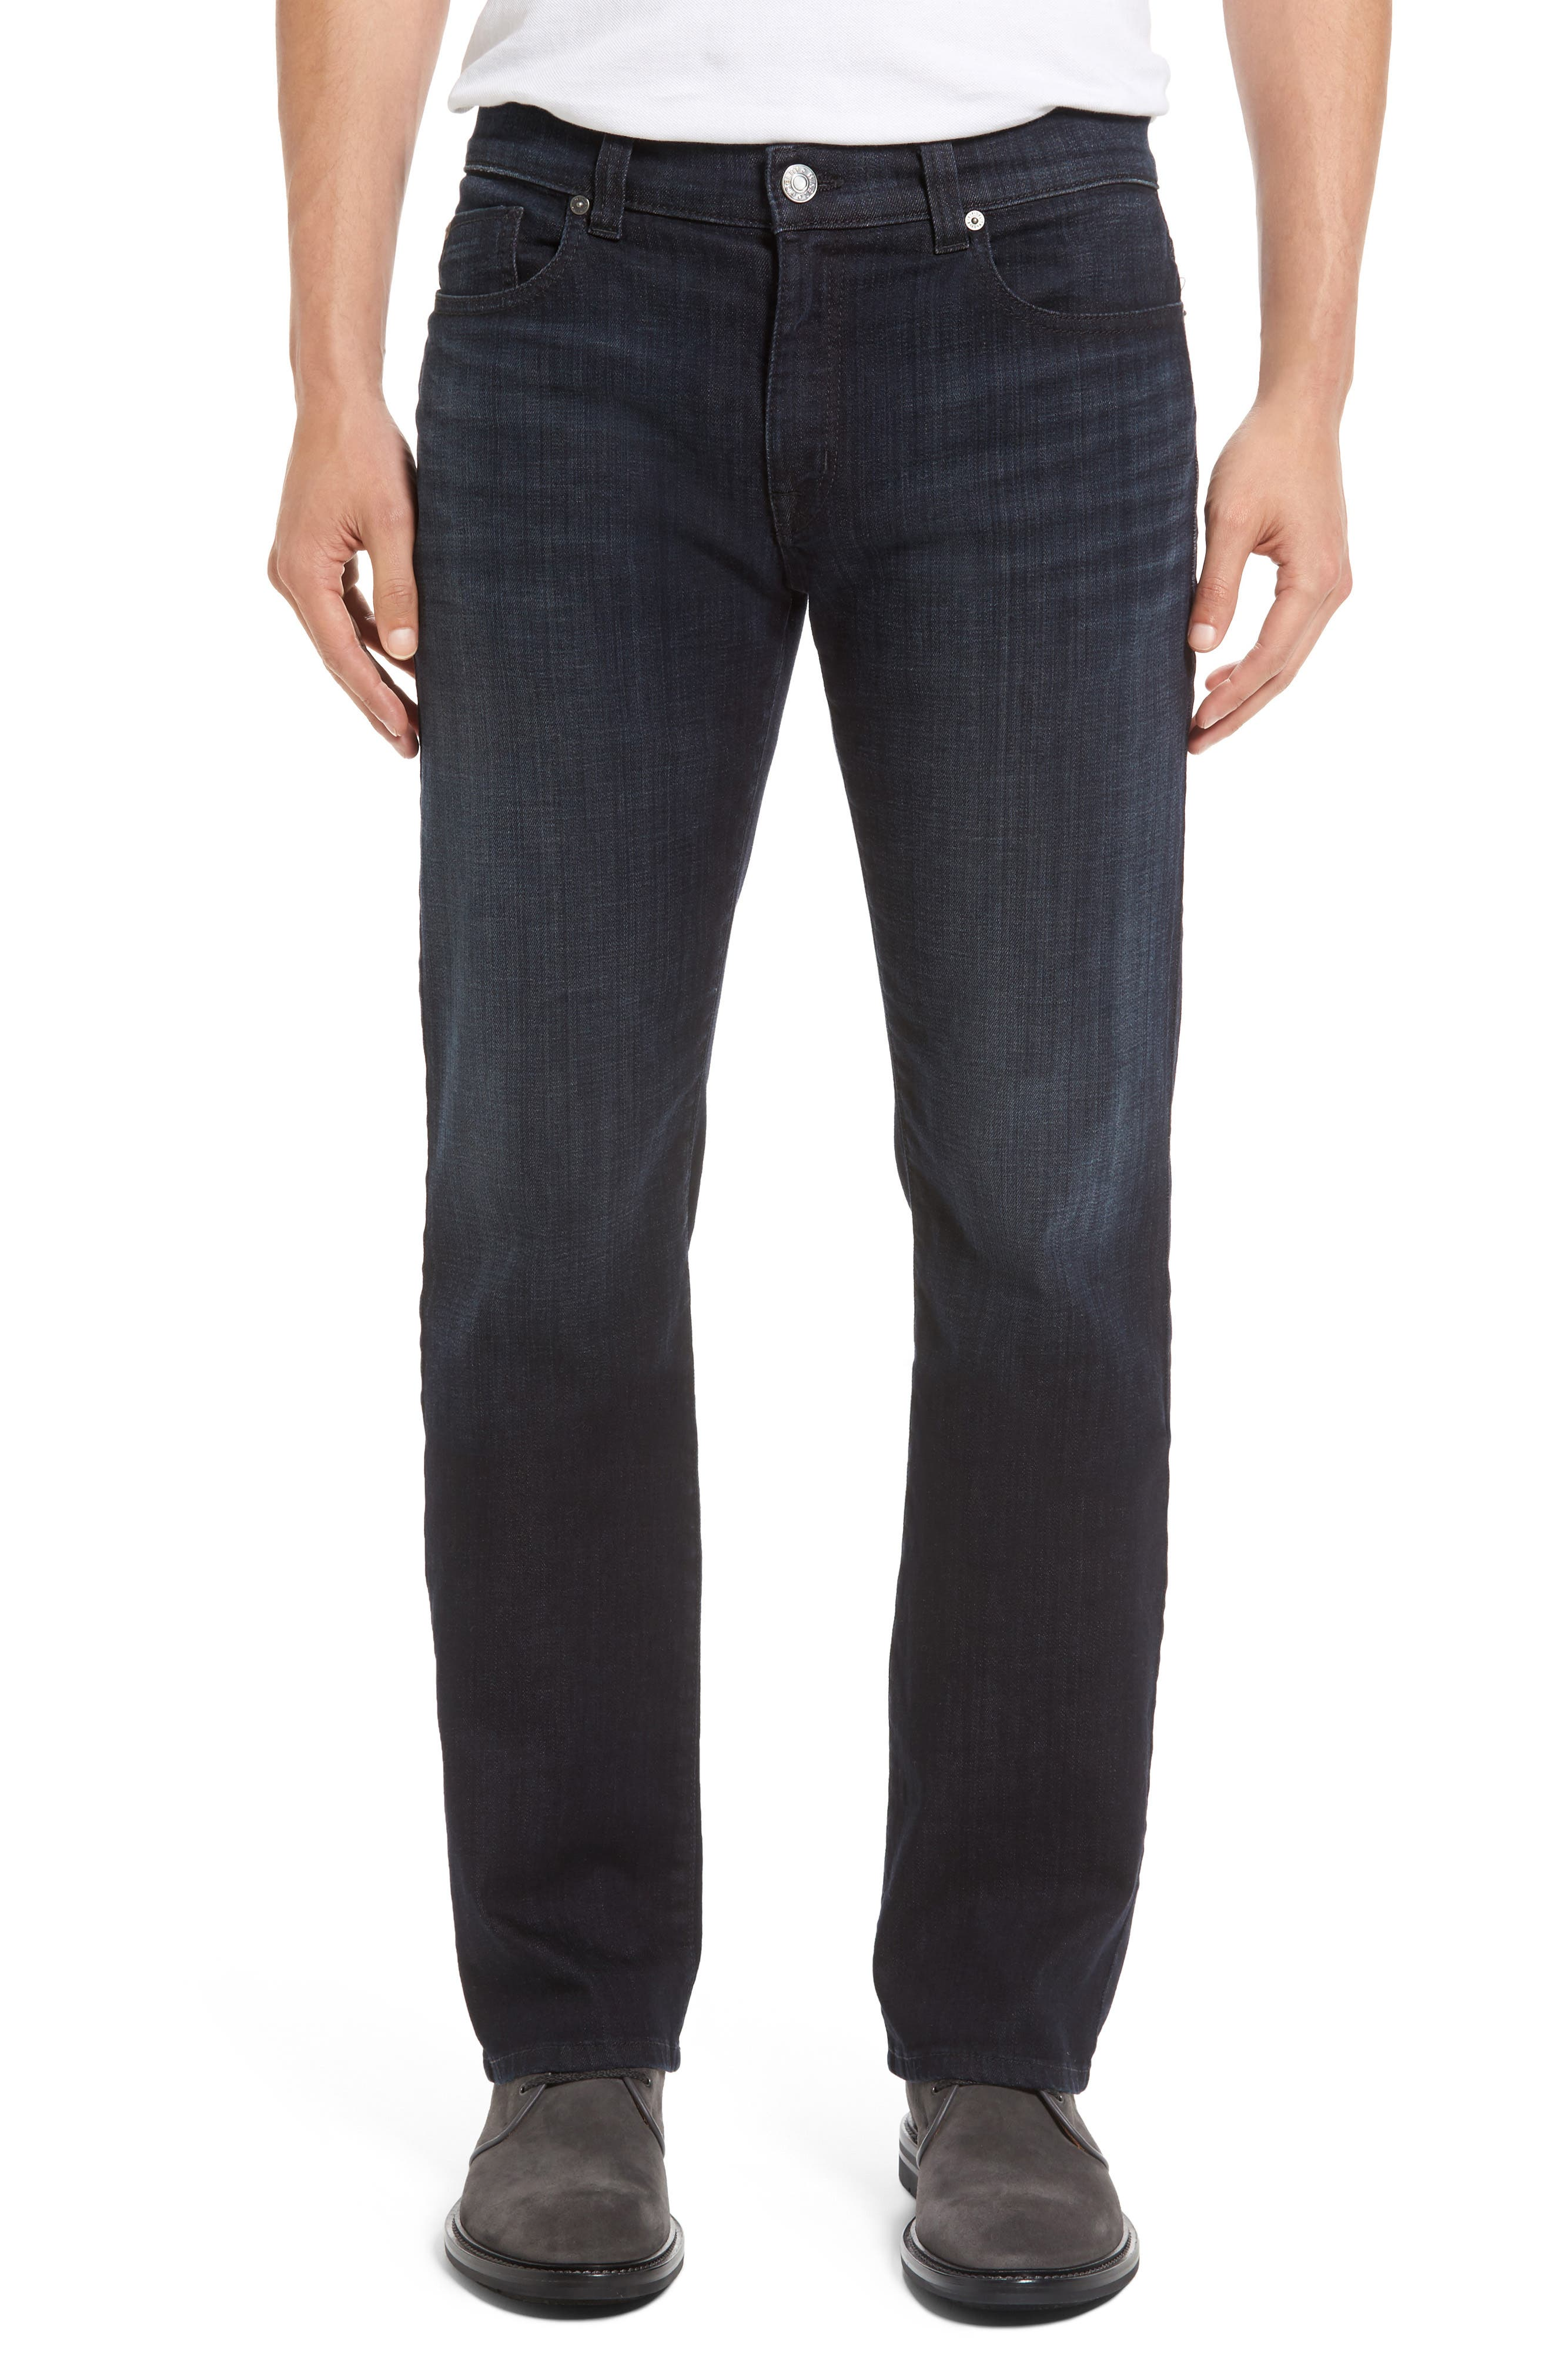 5011 Relaxed Fit Jeans,                         Main,                         color, Harvard